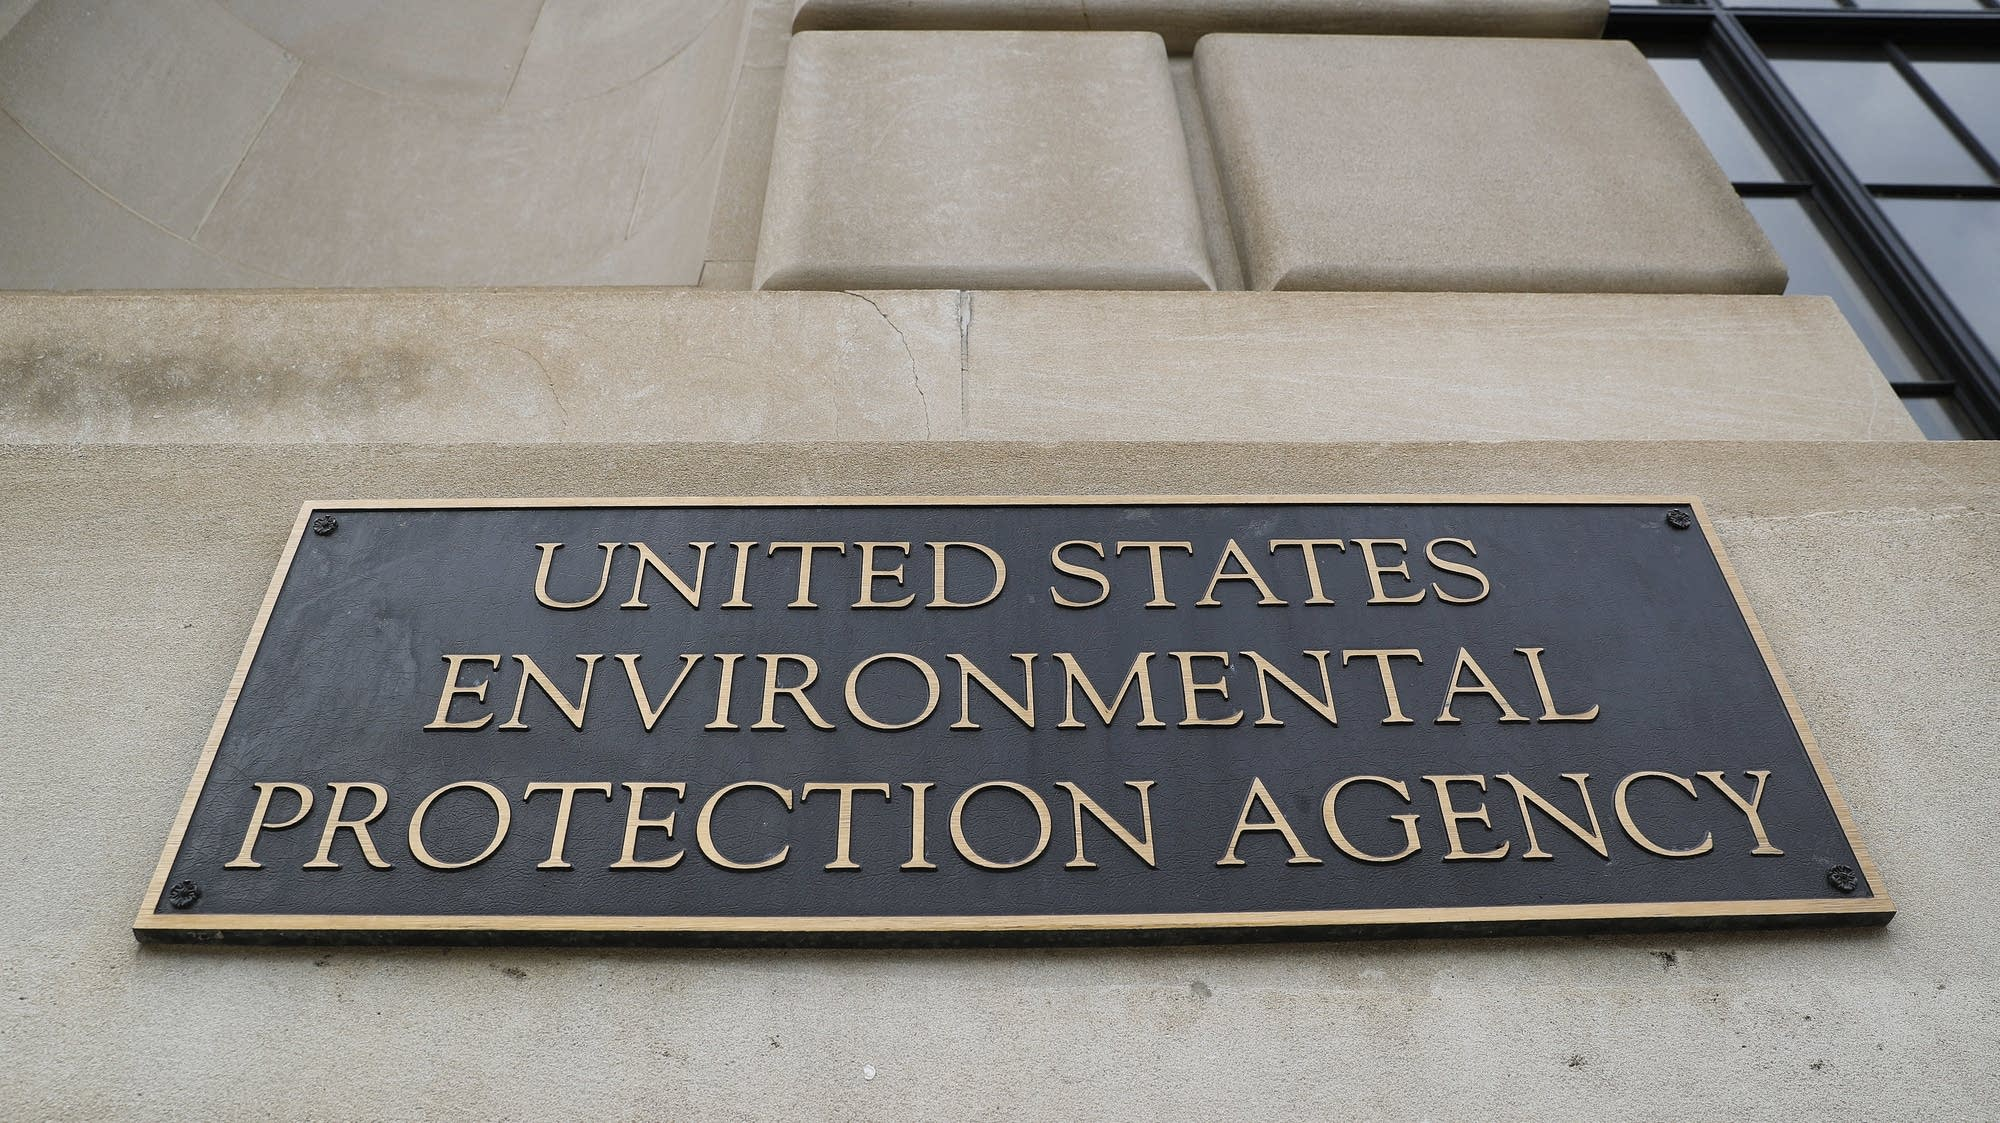 The Environmental Protection Agency Building in Washington, D.C.